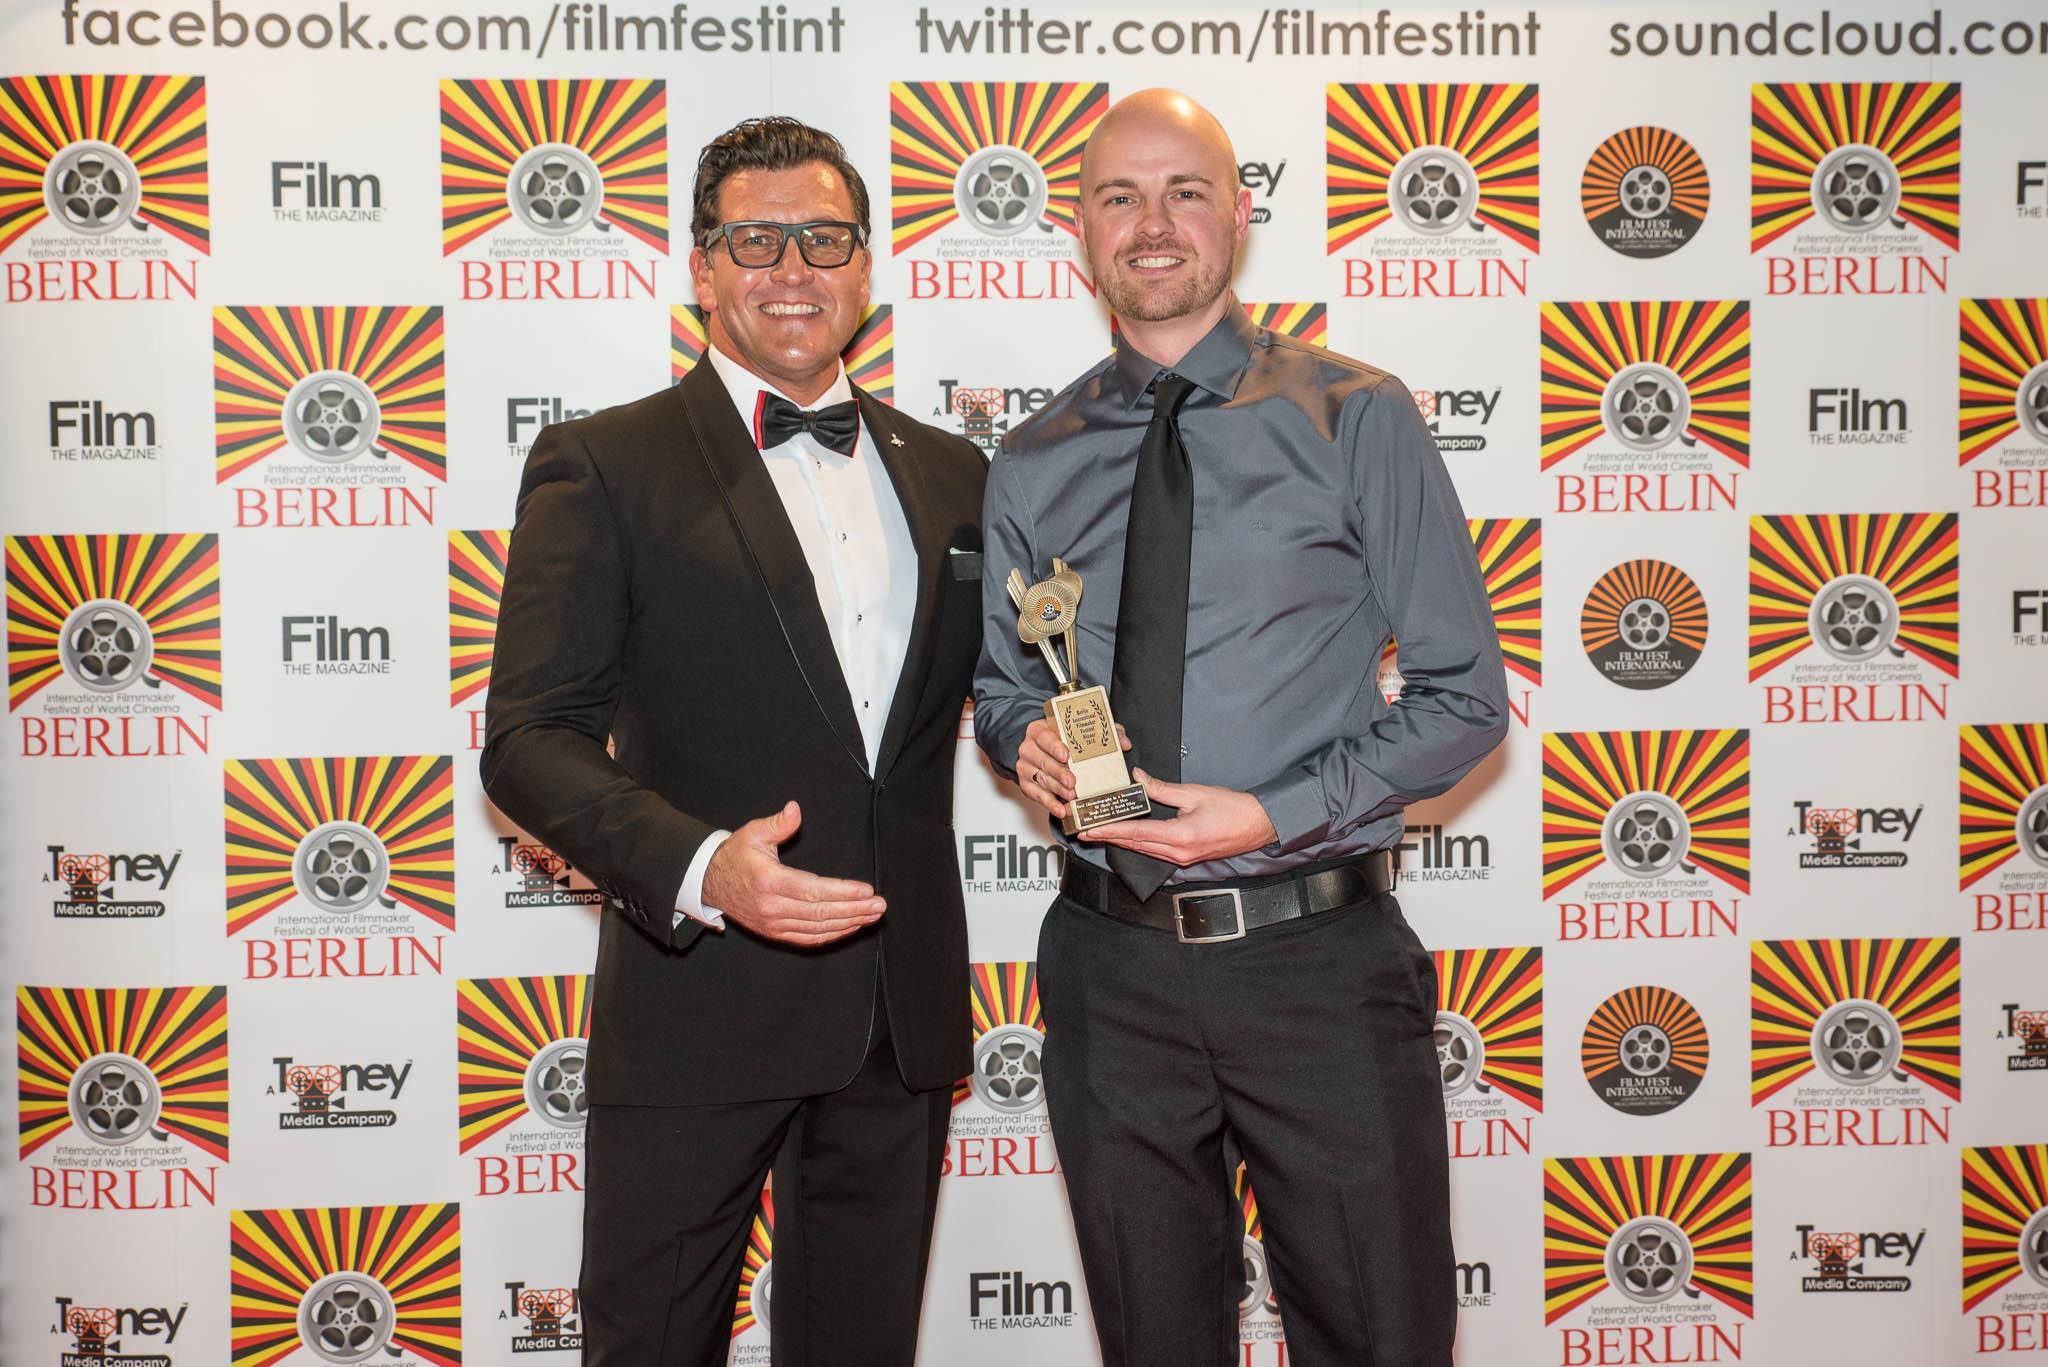 Another Award, Successful Screenings And Media Coverage!